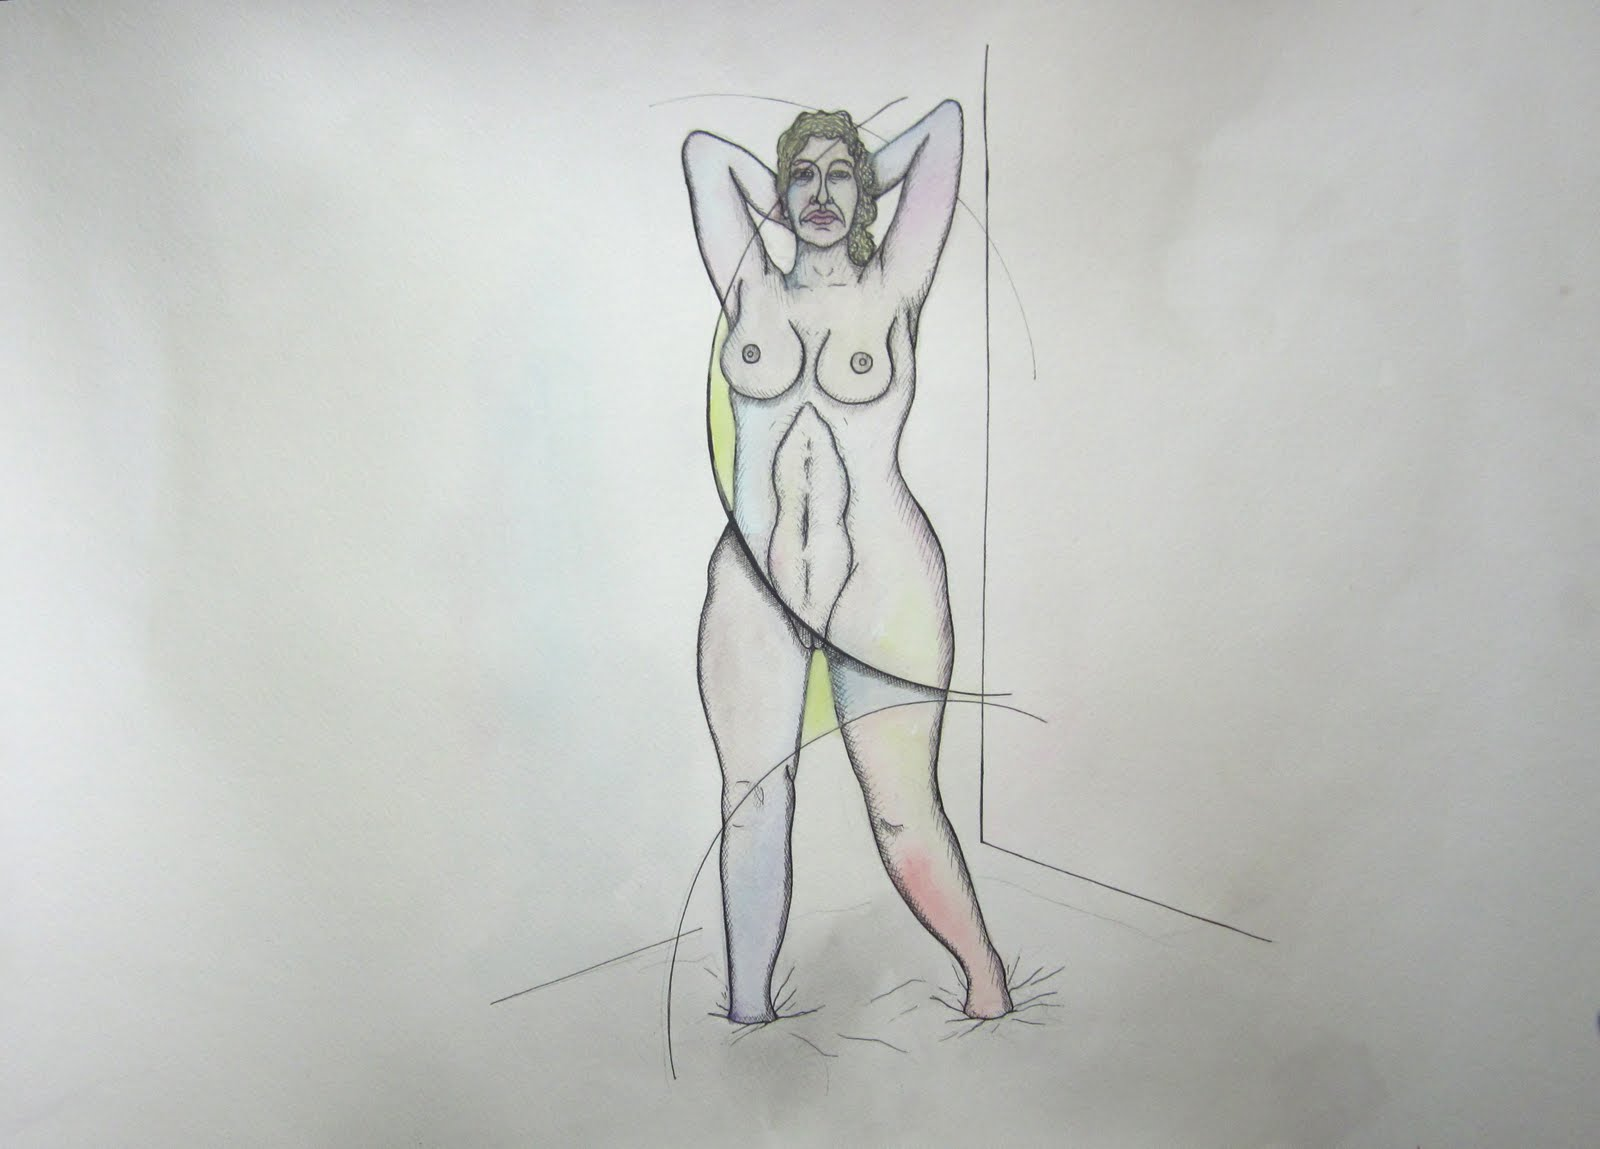 Nude Women With Open Angle